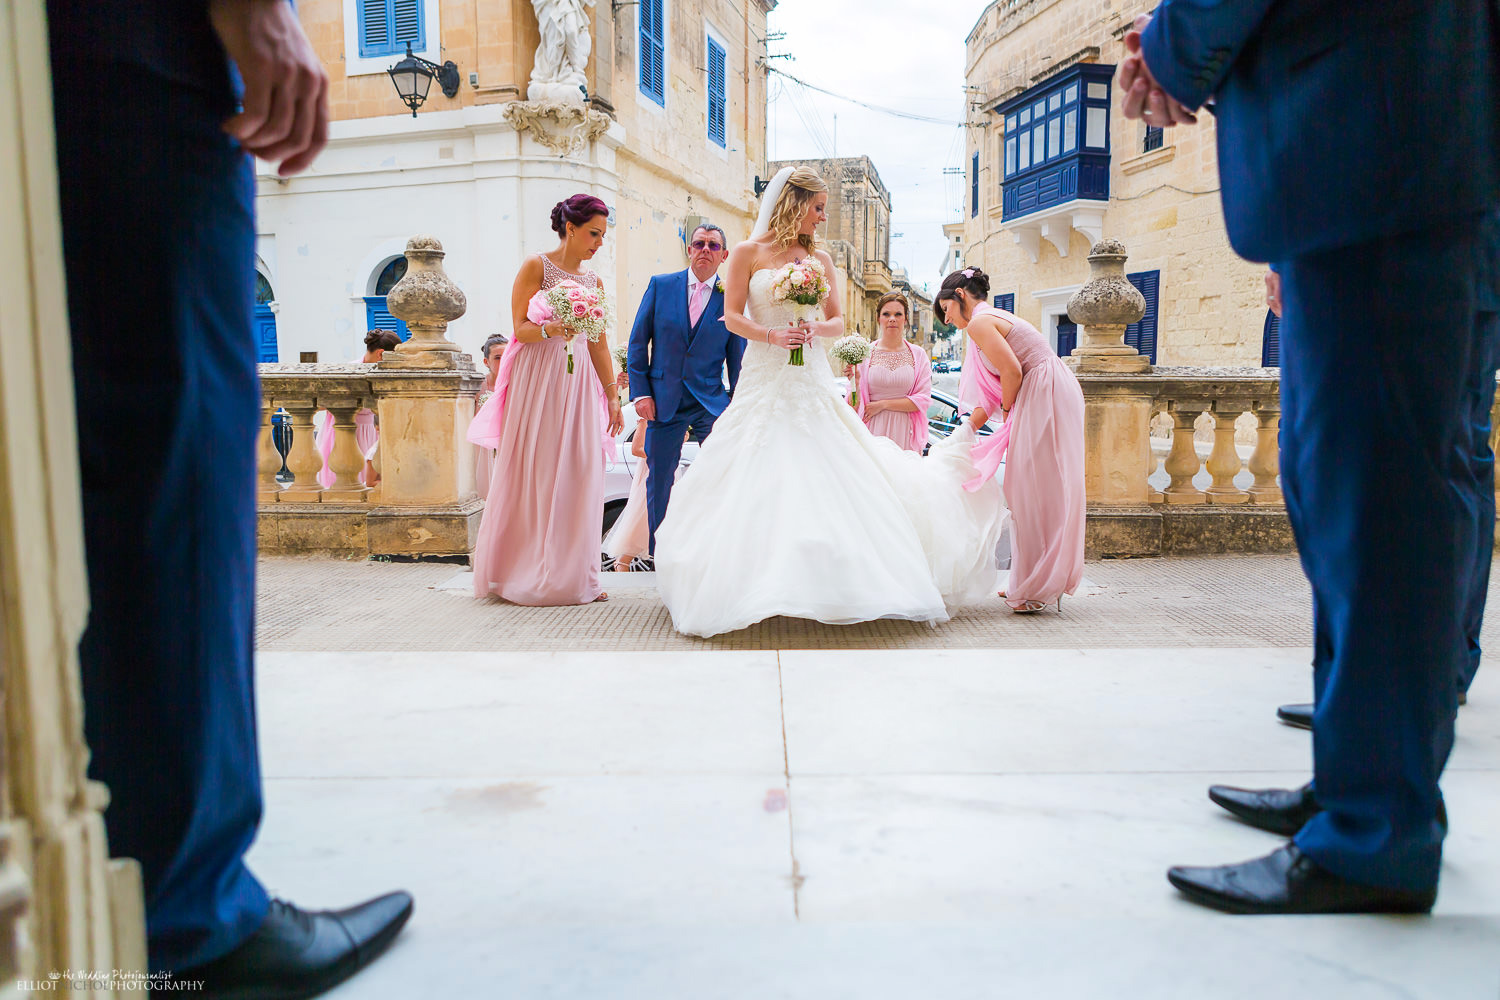 Bride arrives at Attard parish church with her bridal party